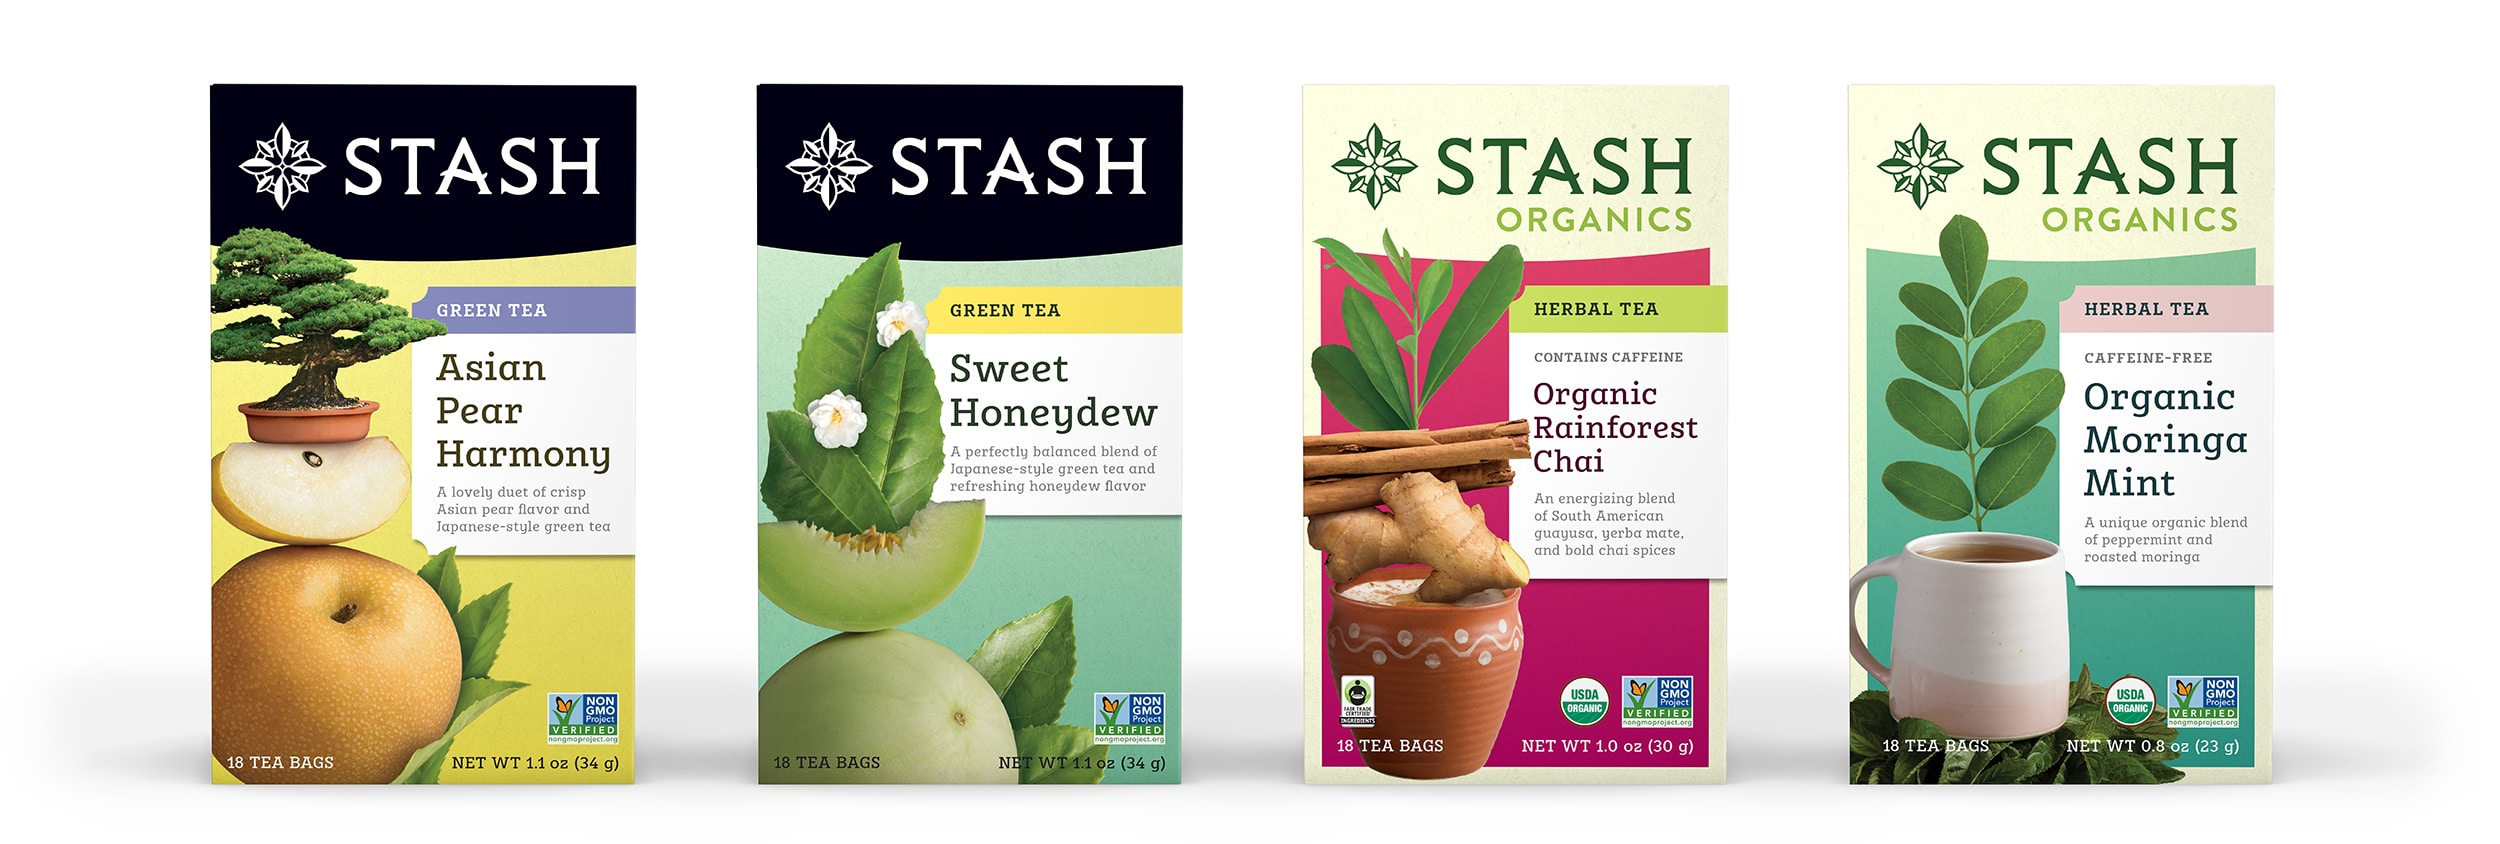 Stash Tea Introduces 4 New Teas